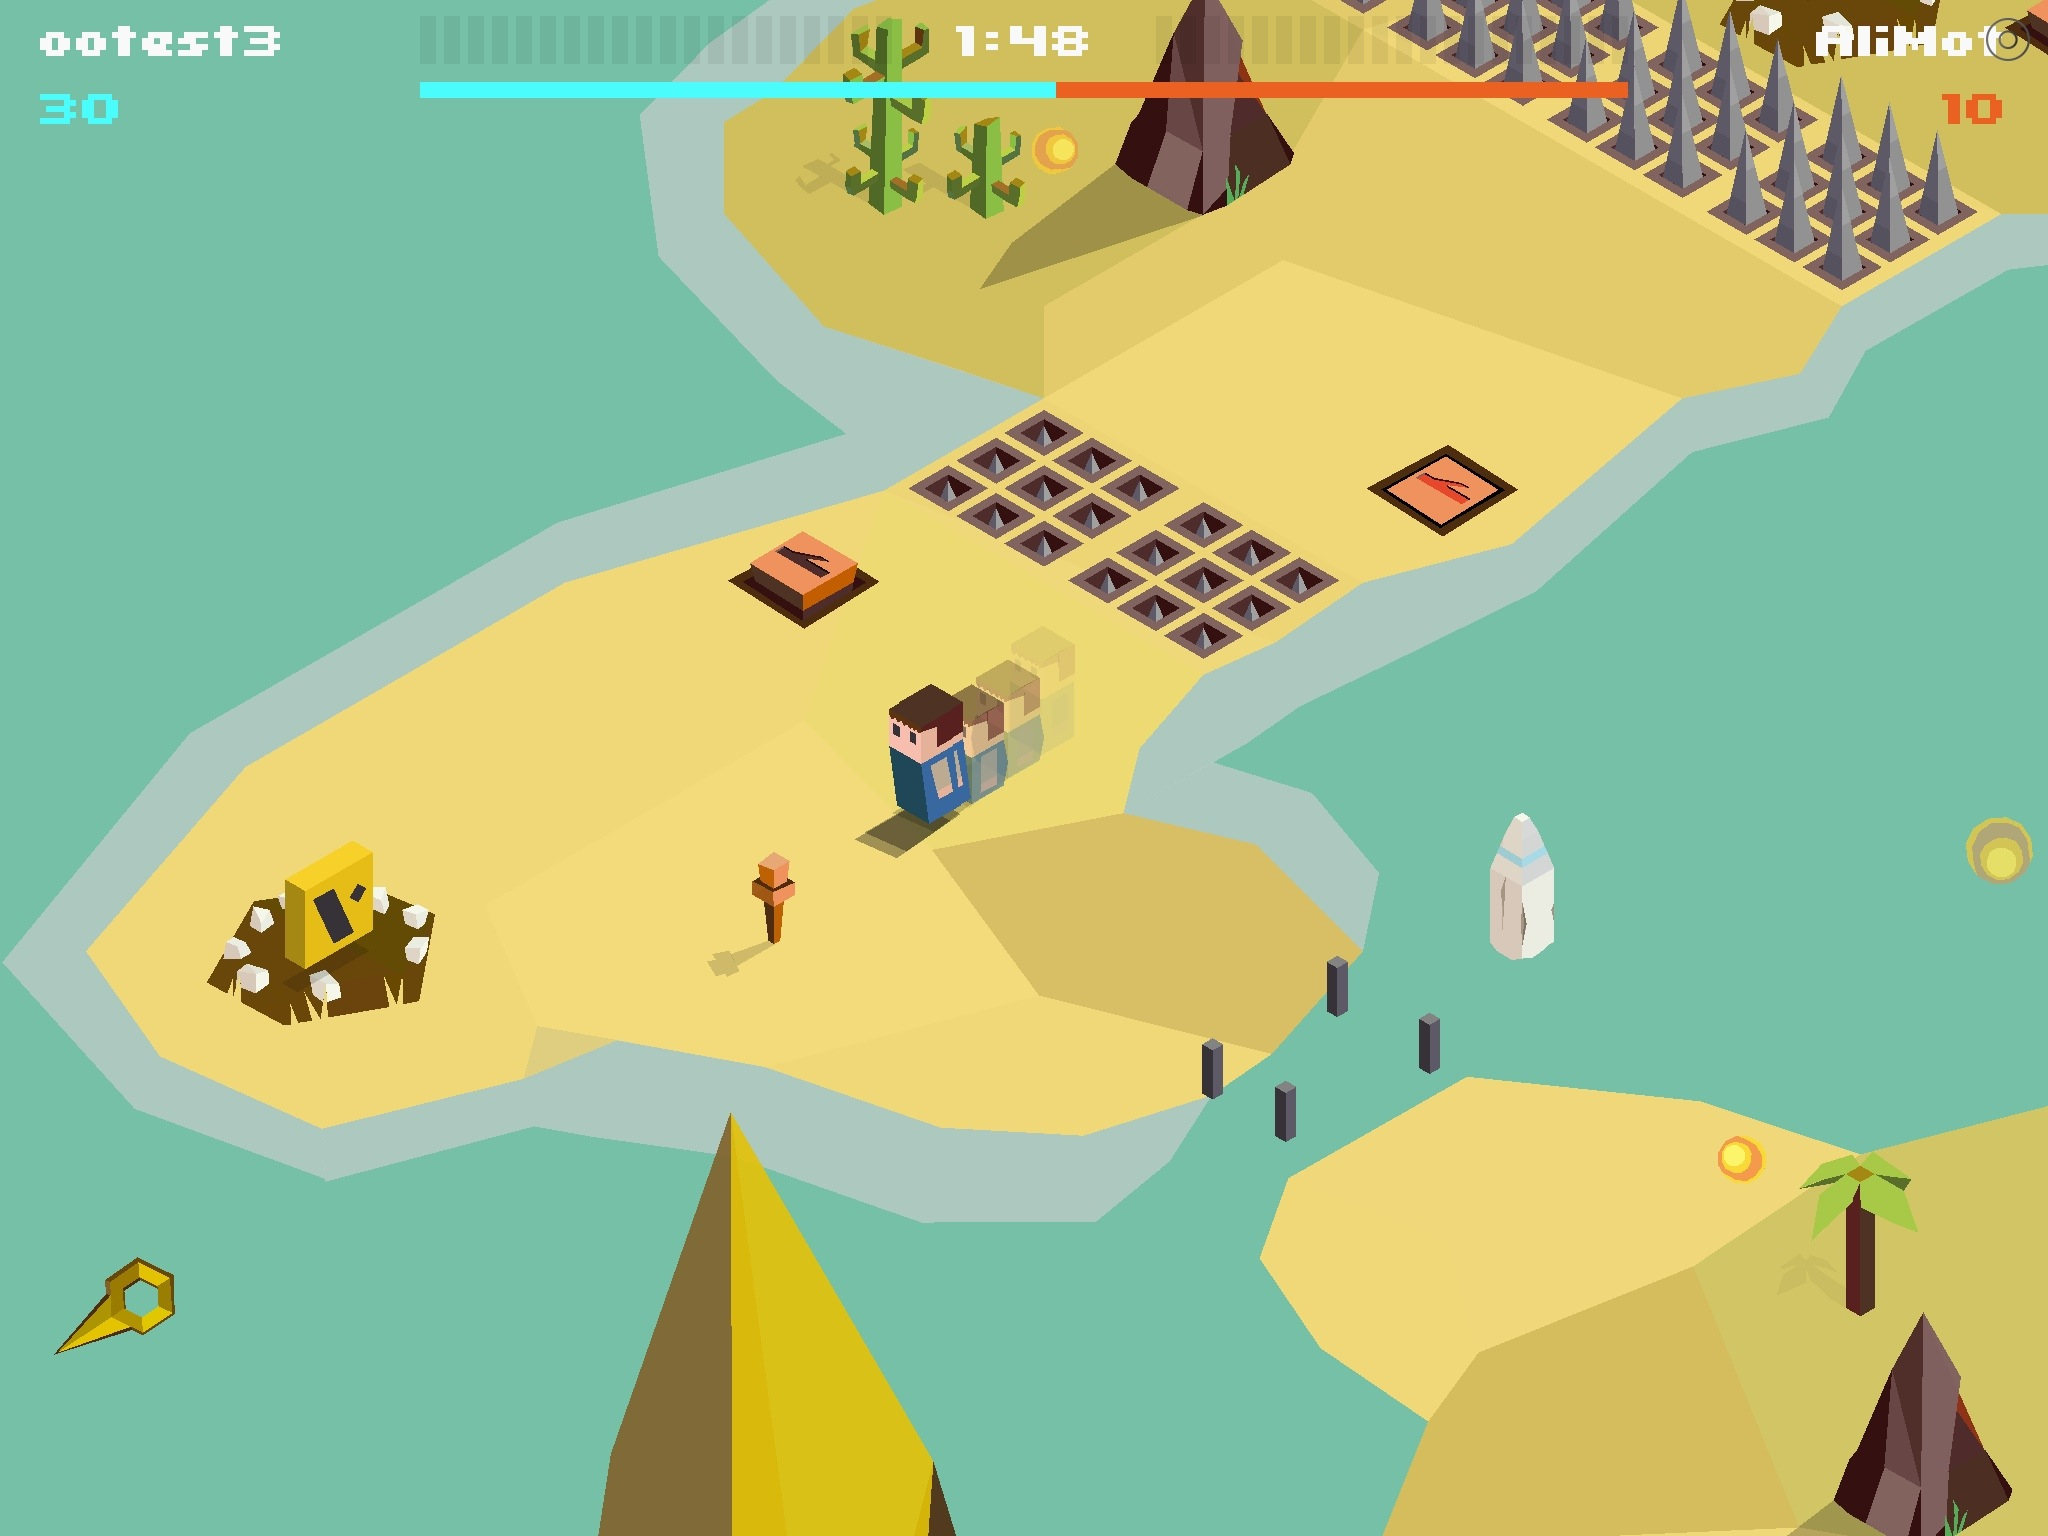 Battle with your other half among the primitive polygons in online multiplayer iOS game Anima